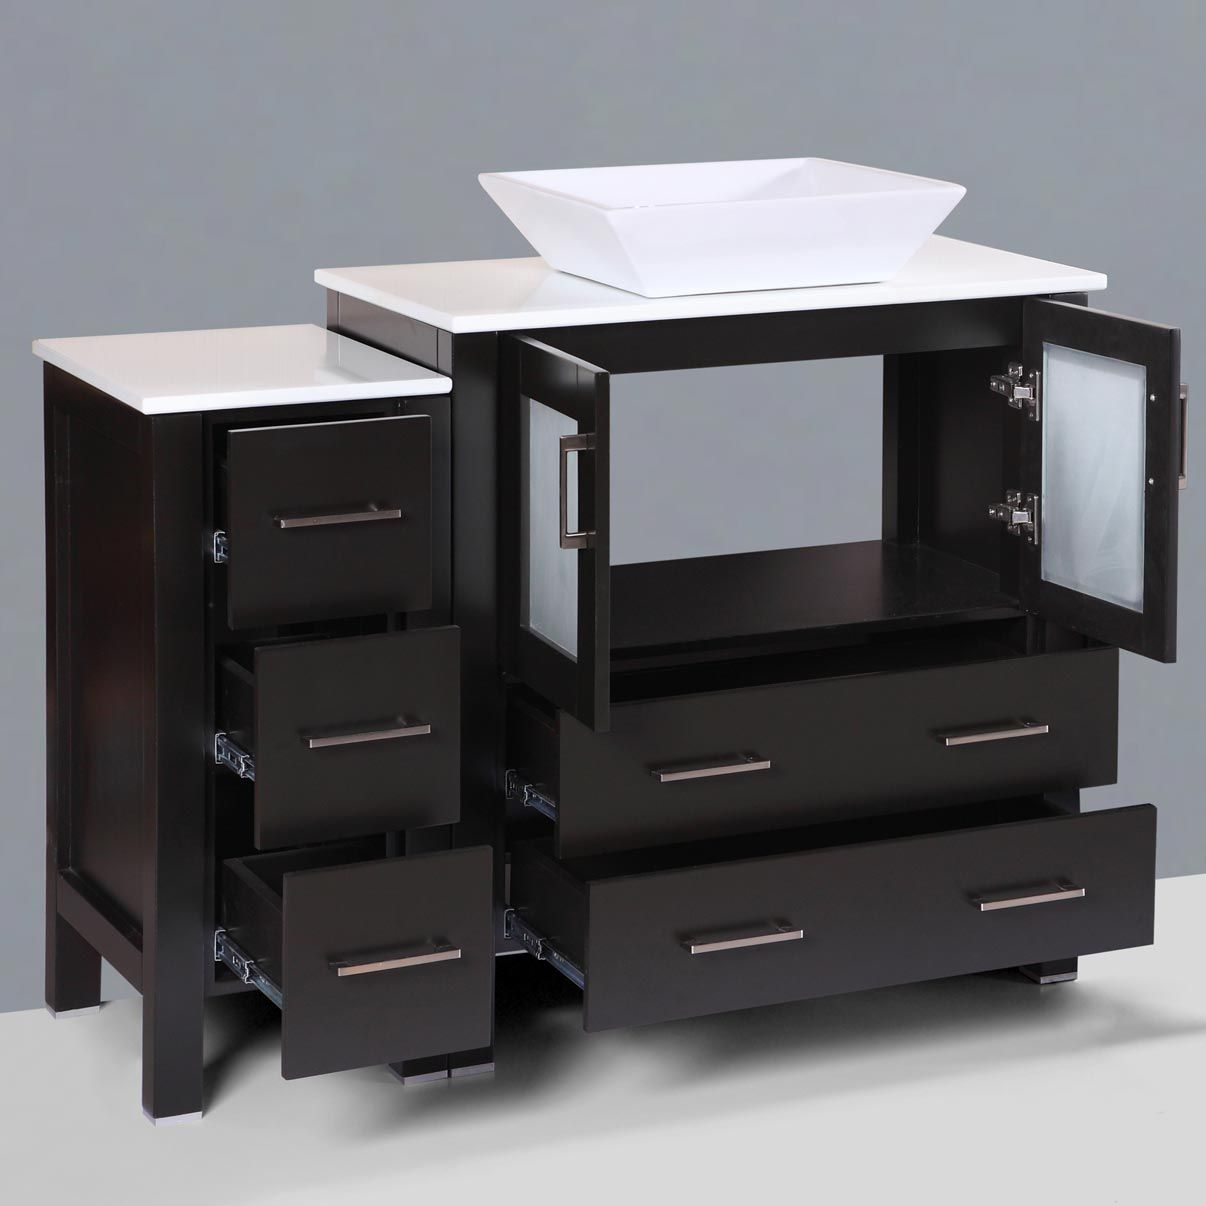 Vanity Set.Lesscare Espresso 84w Single Vessel Sink Vanity Set With Four Vanity Drawer Bases And One Mirror